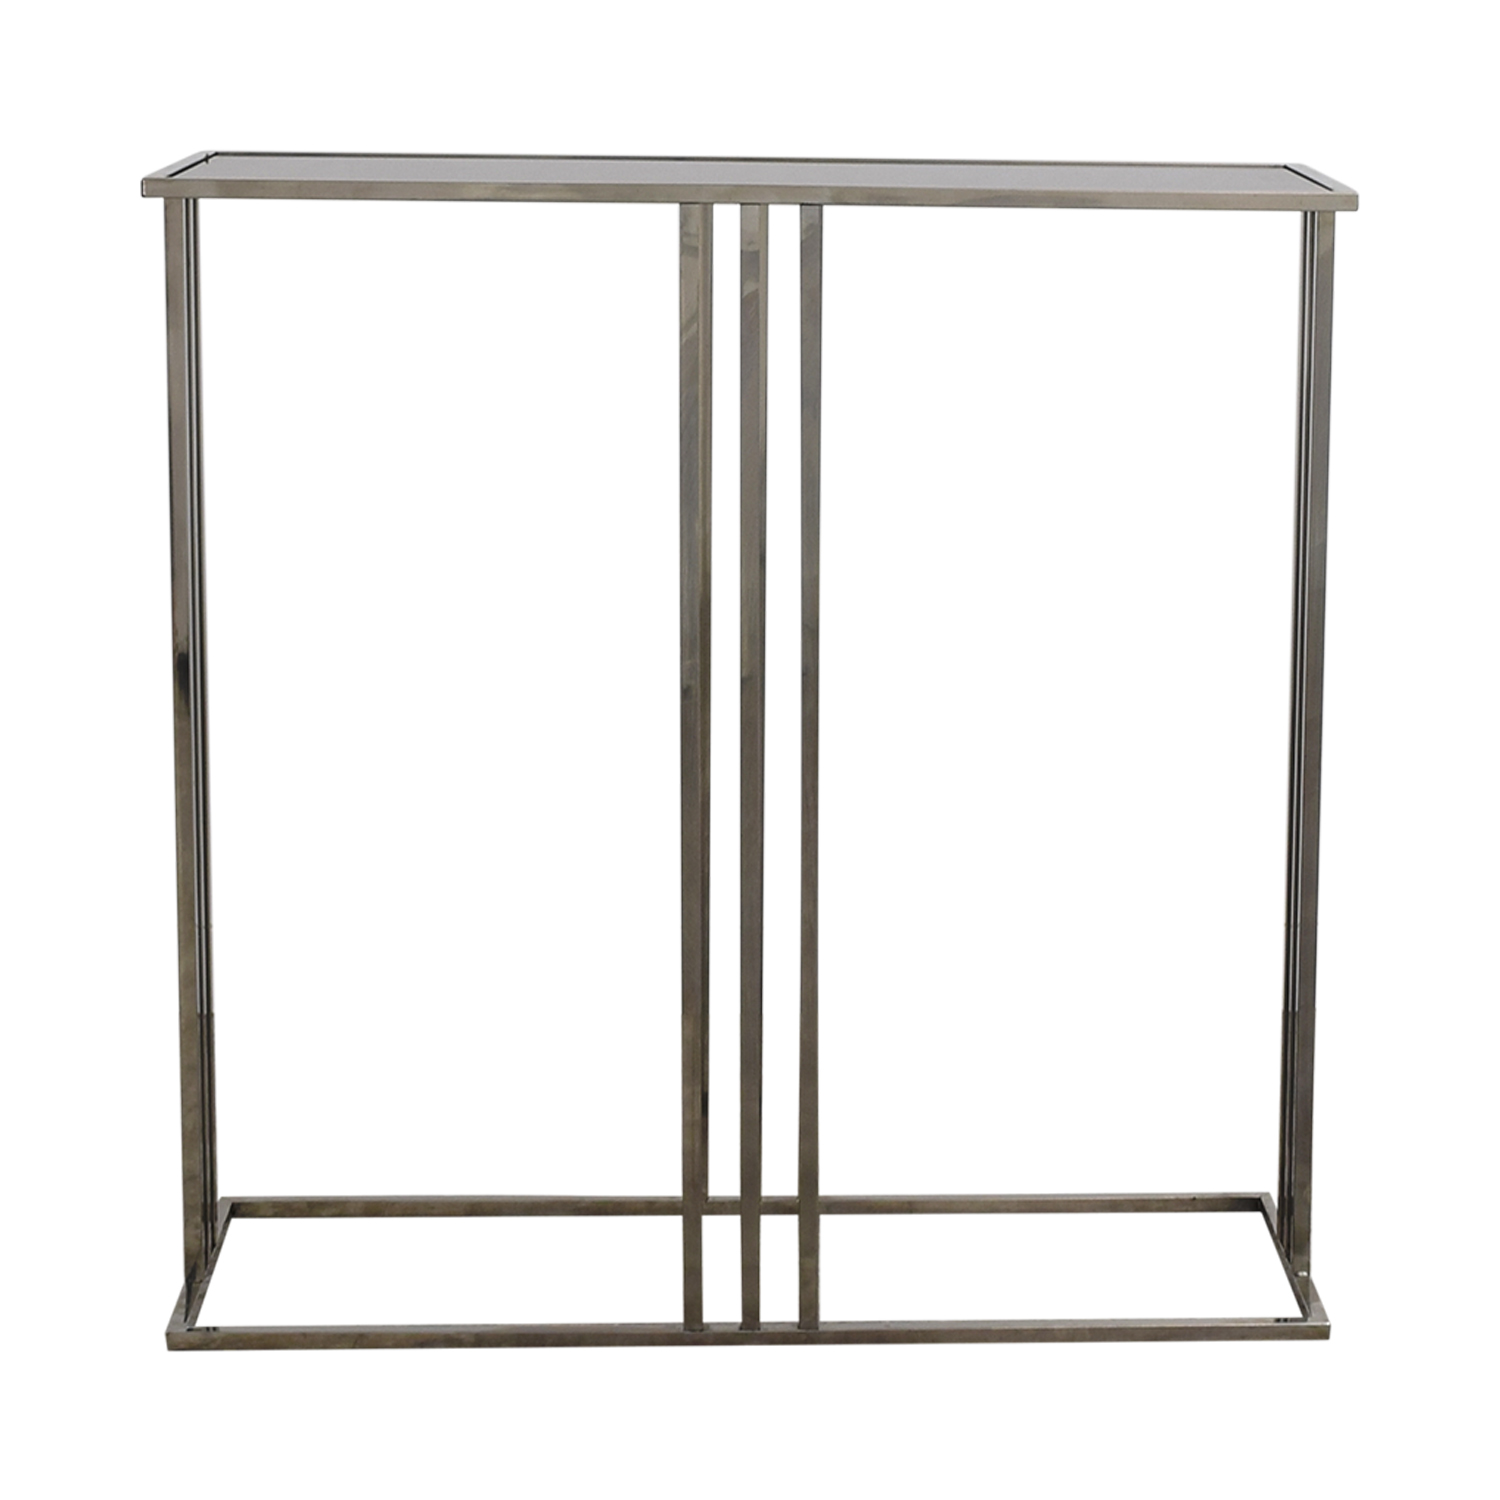 HomeGoods HomeGoods Black and Silver Entryway Table nj